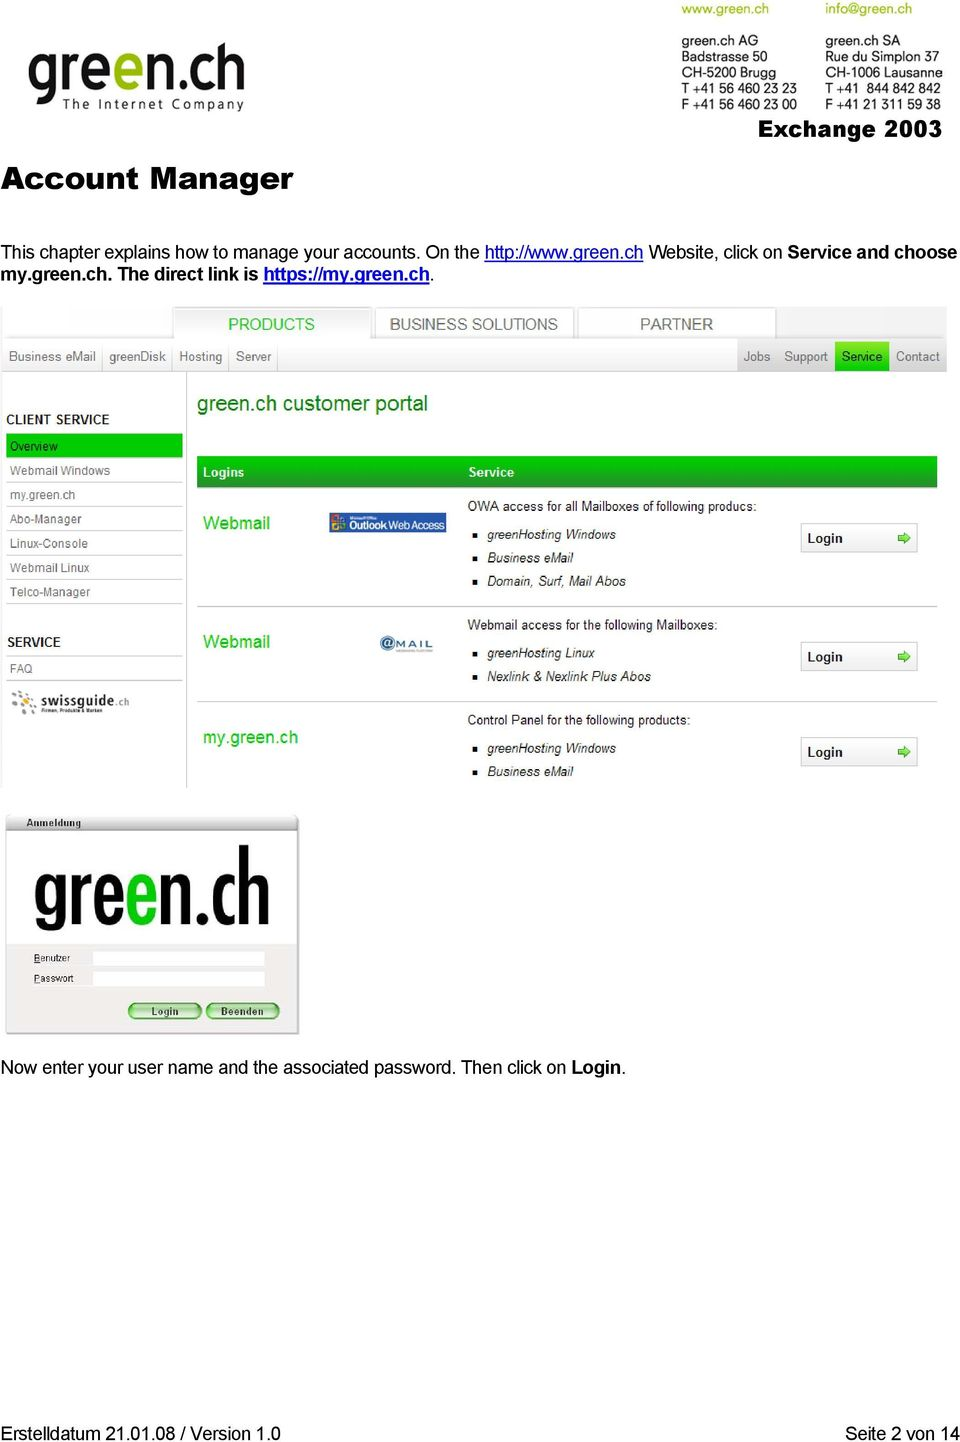 green.ch. Now enter your user name and the associated password.